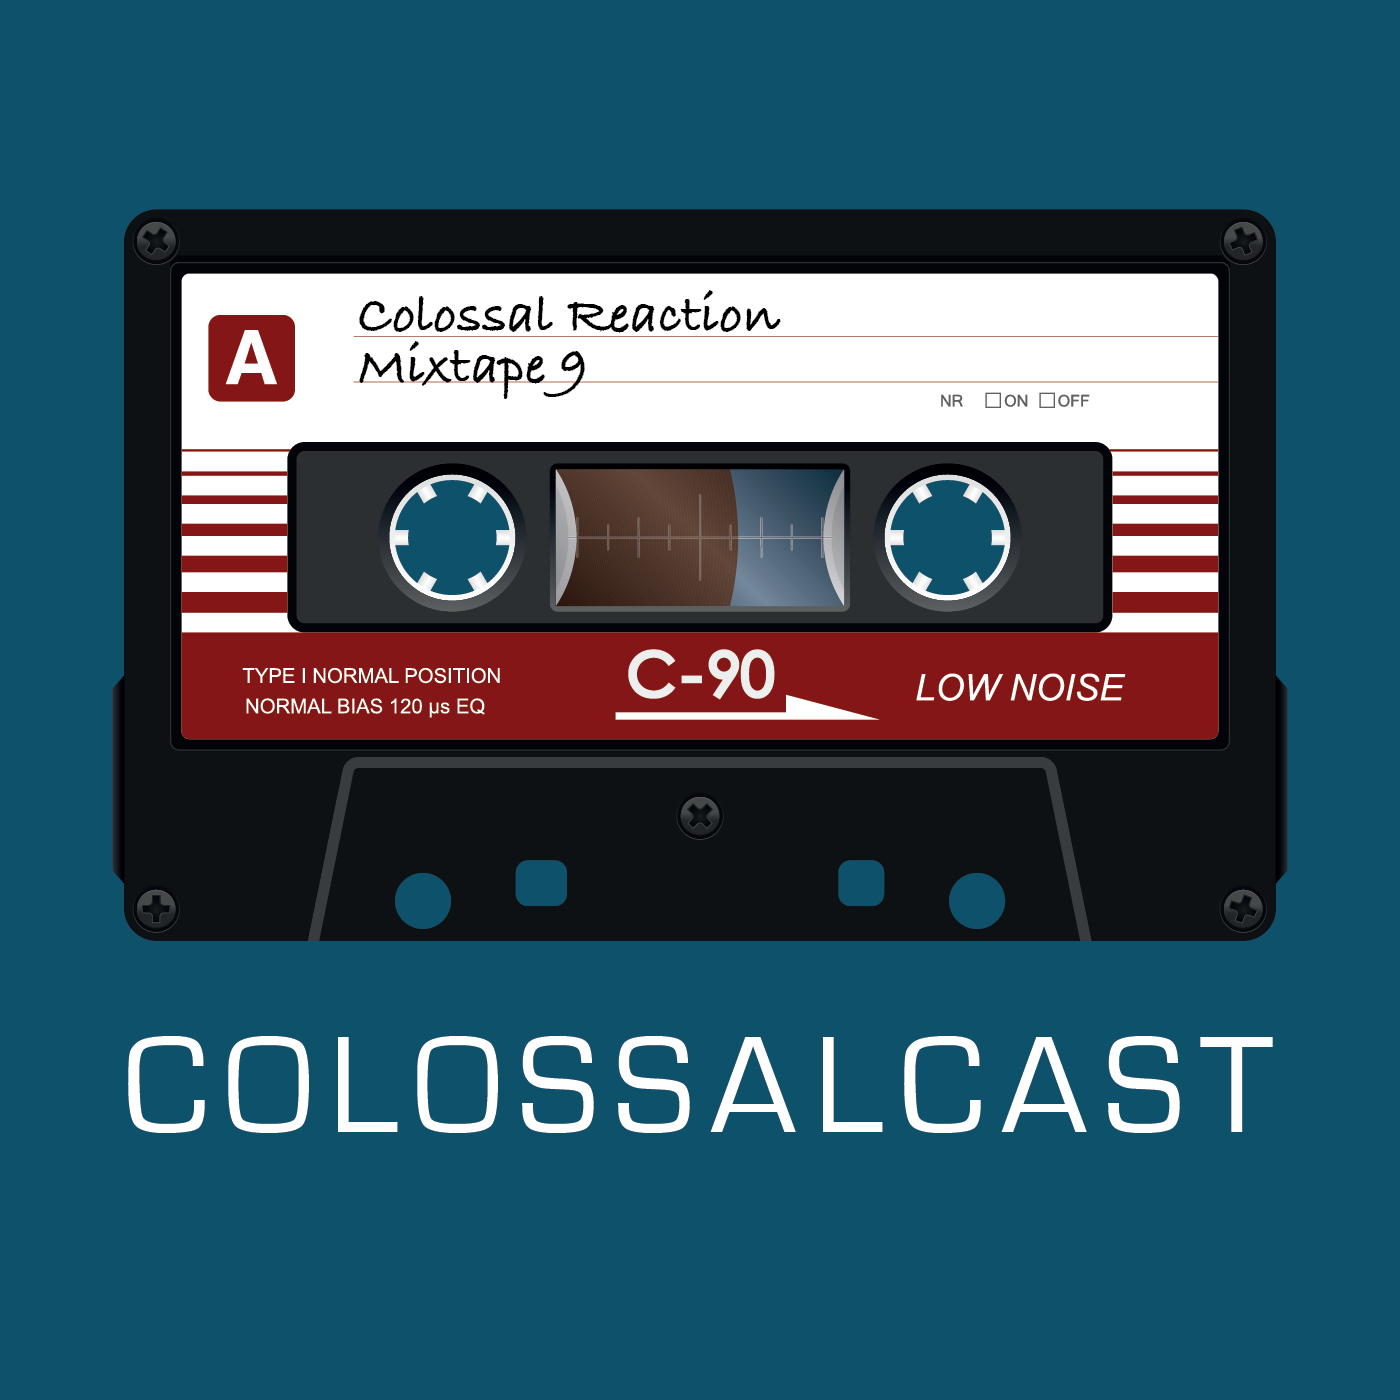 The COLOSSALCAST: Drum & Bass Podcast